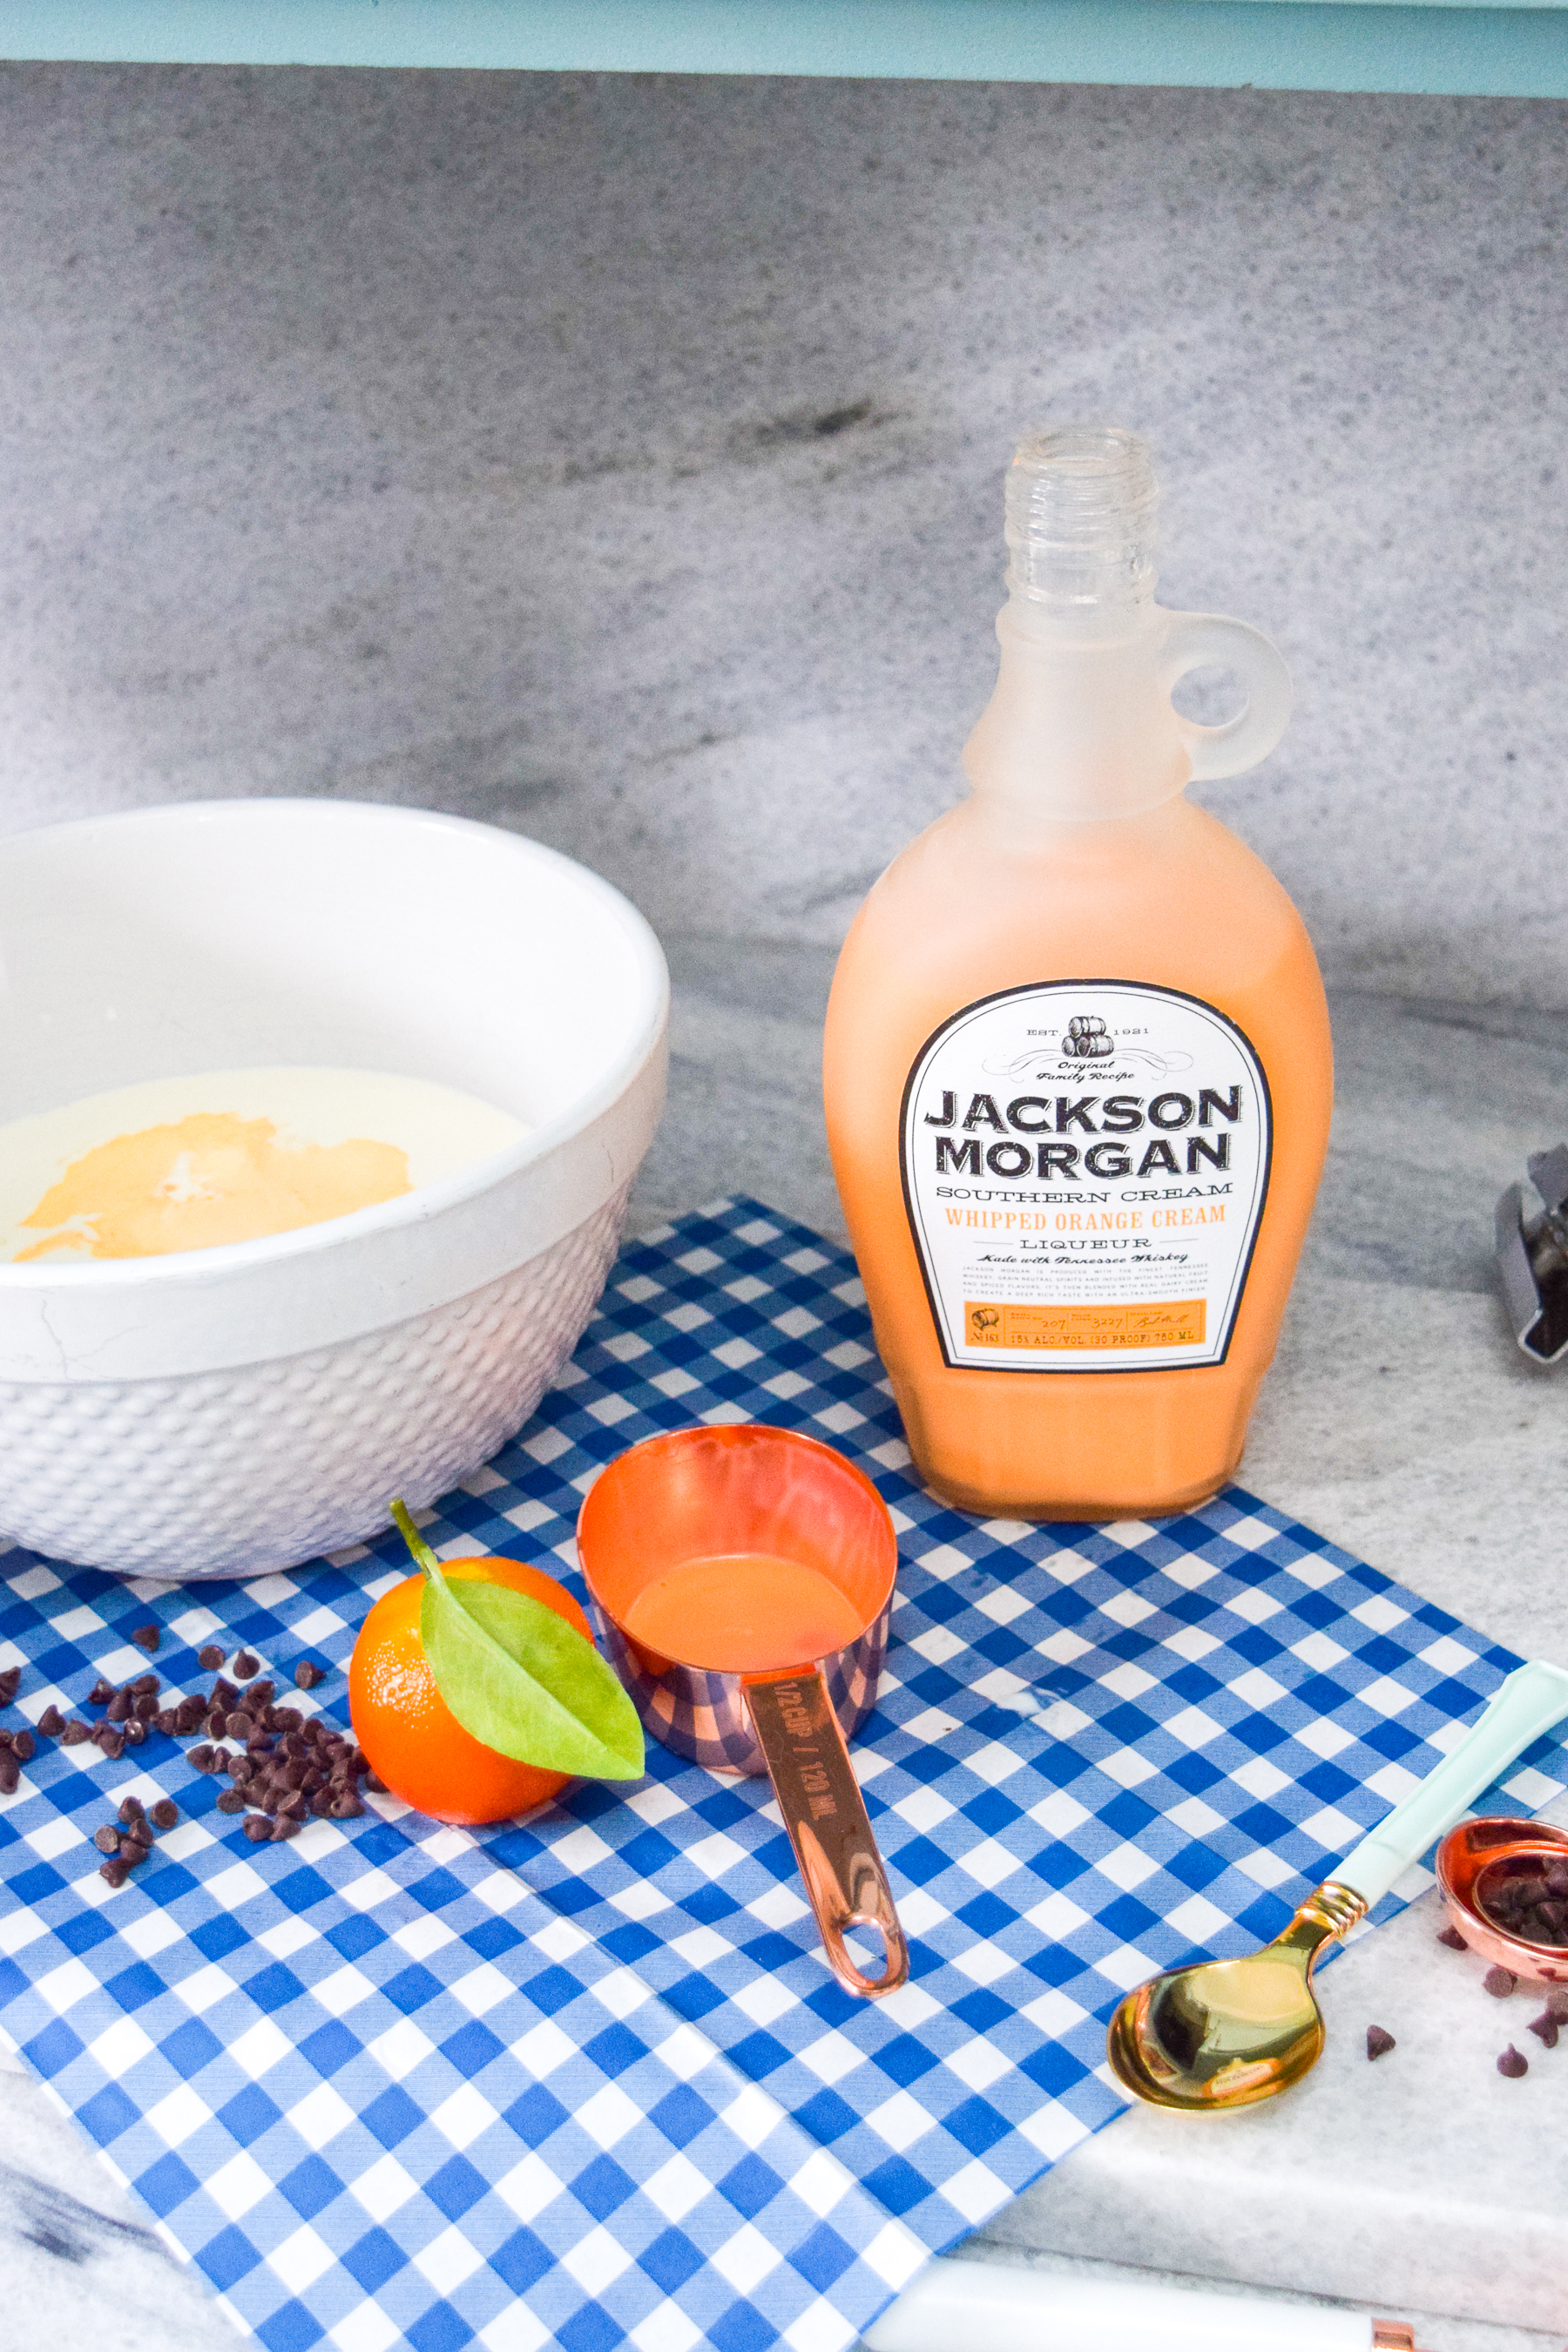 Whipped orange ice cream sandwiches are the treat you didn't know you needed! Make 'em at home, stuff 'em with what you want, or just eat the ice cream! Best part, they're made using Jackson Morgan's Orange Whipped Cream.